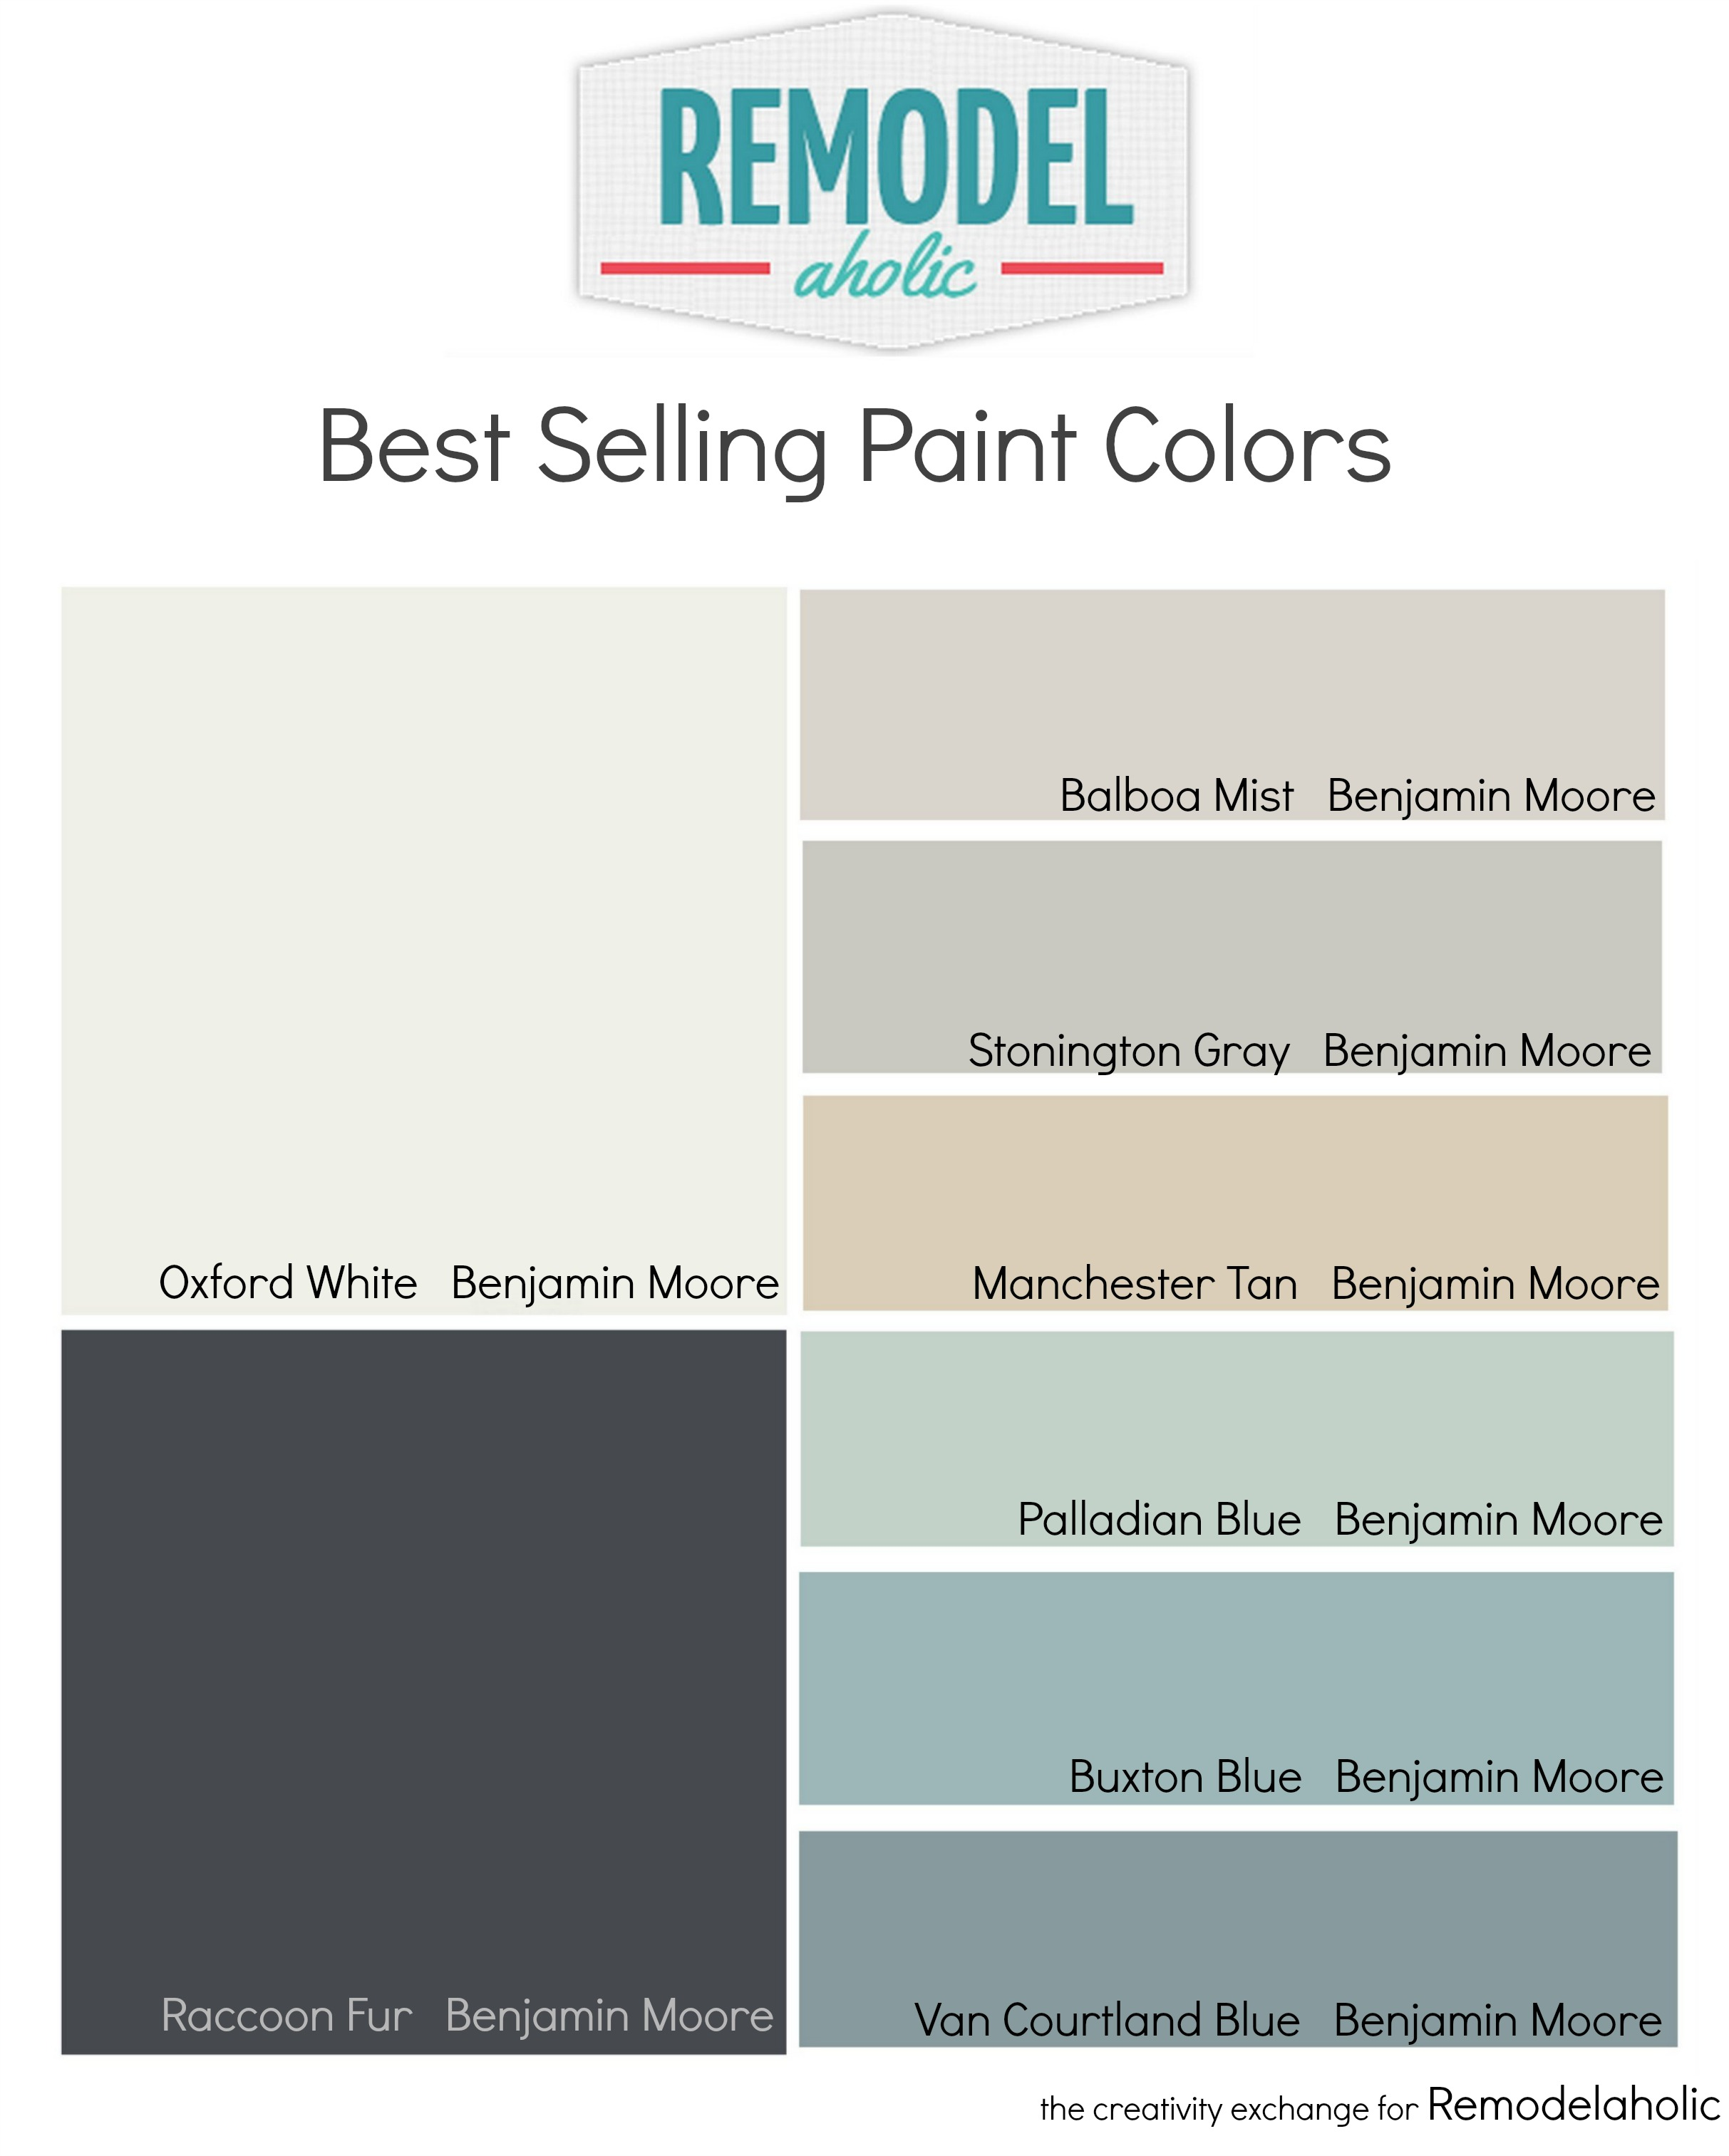 Most Popular Paint Colors Adorable Remodelaholic  Most Popular And Best Selling Paint Colors Inspiration